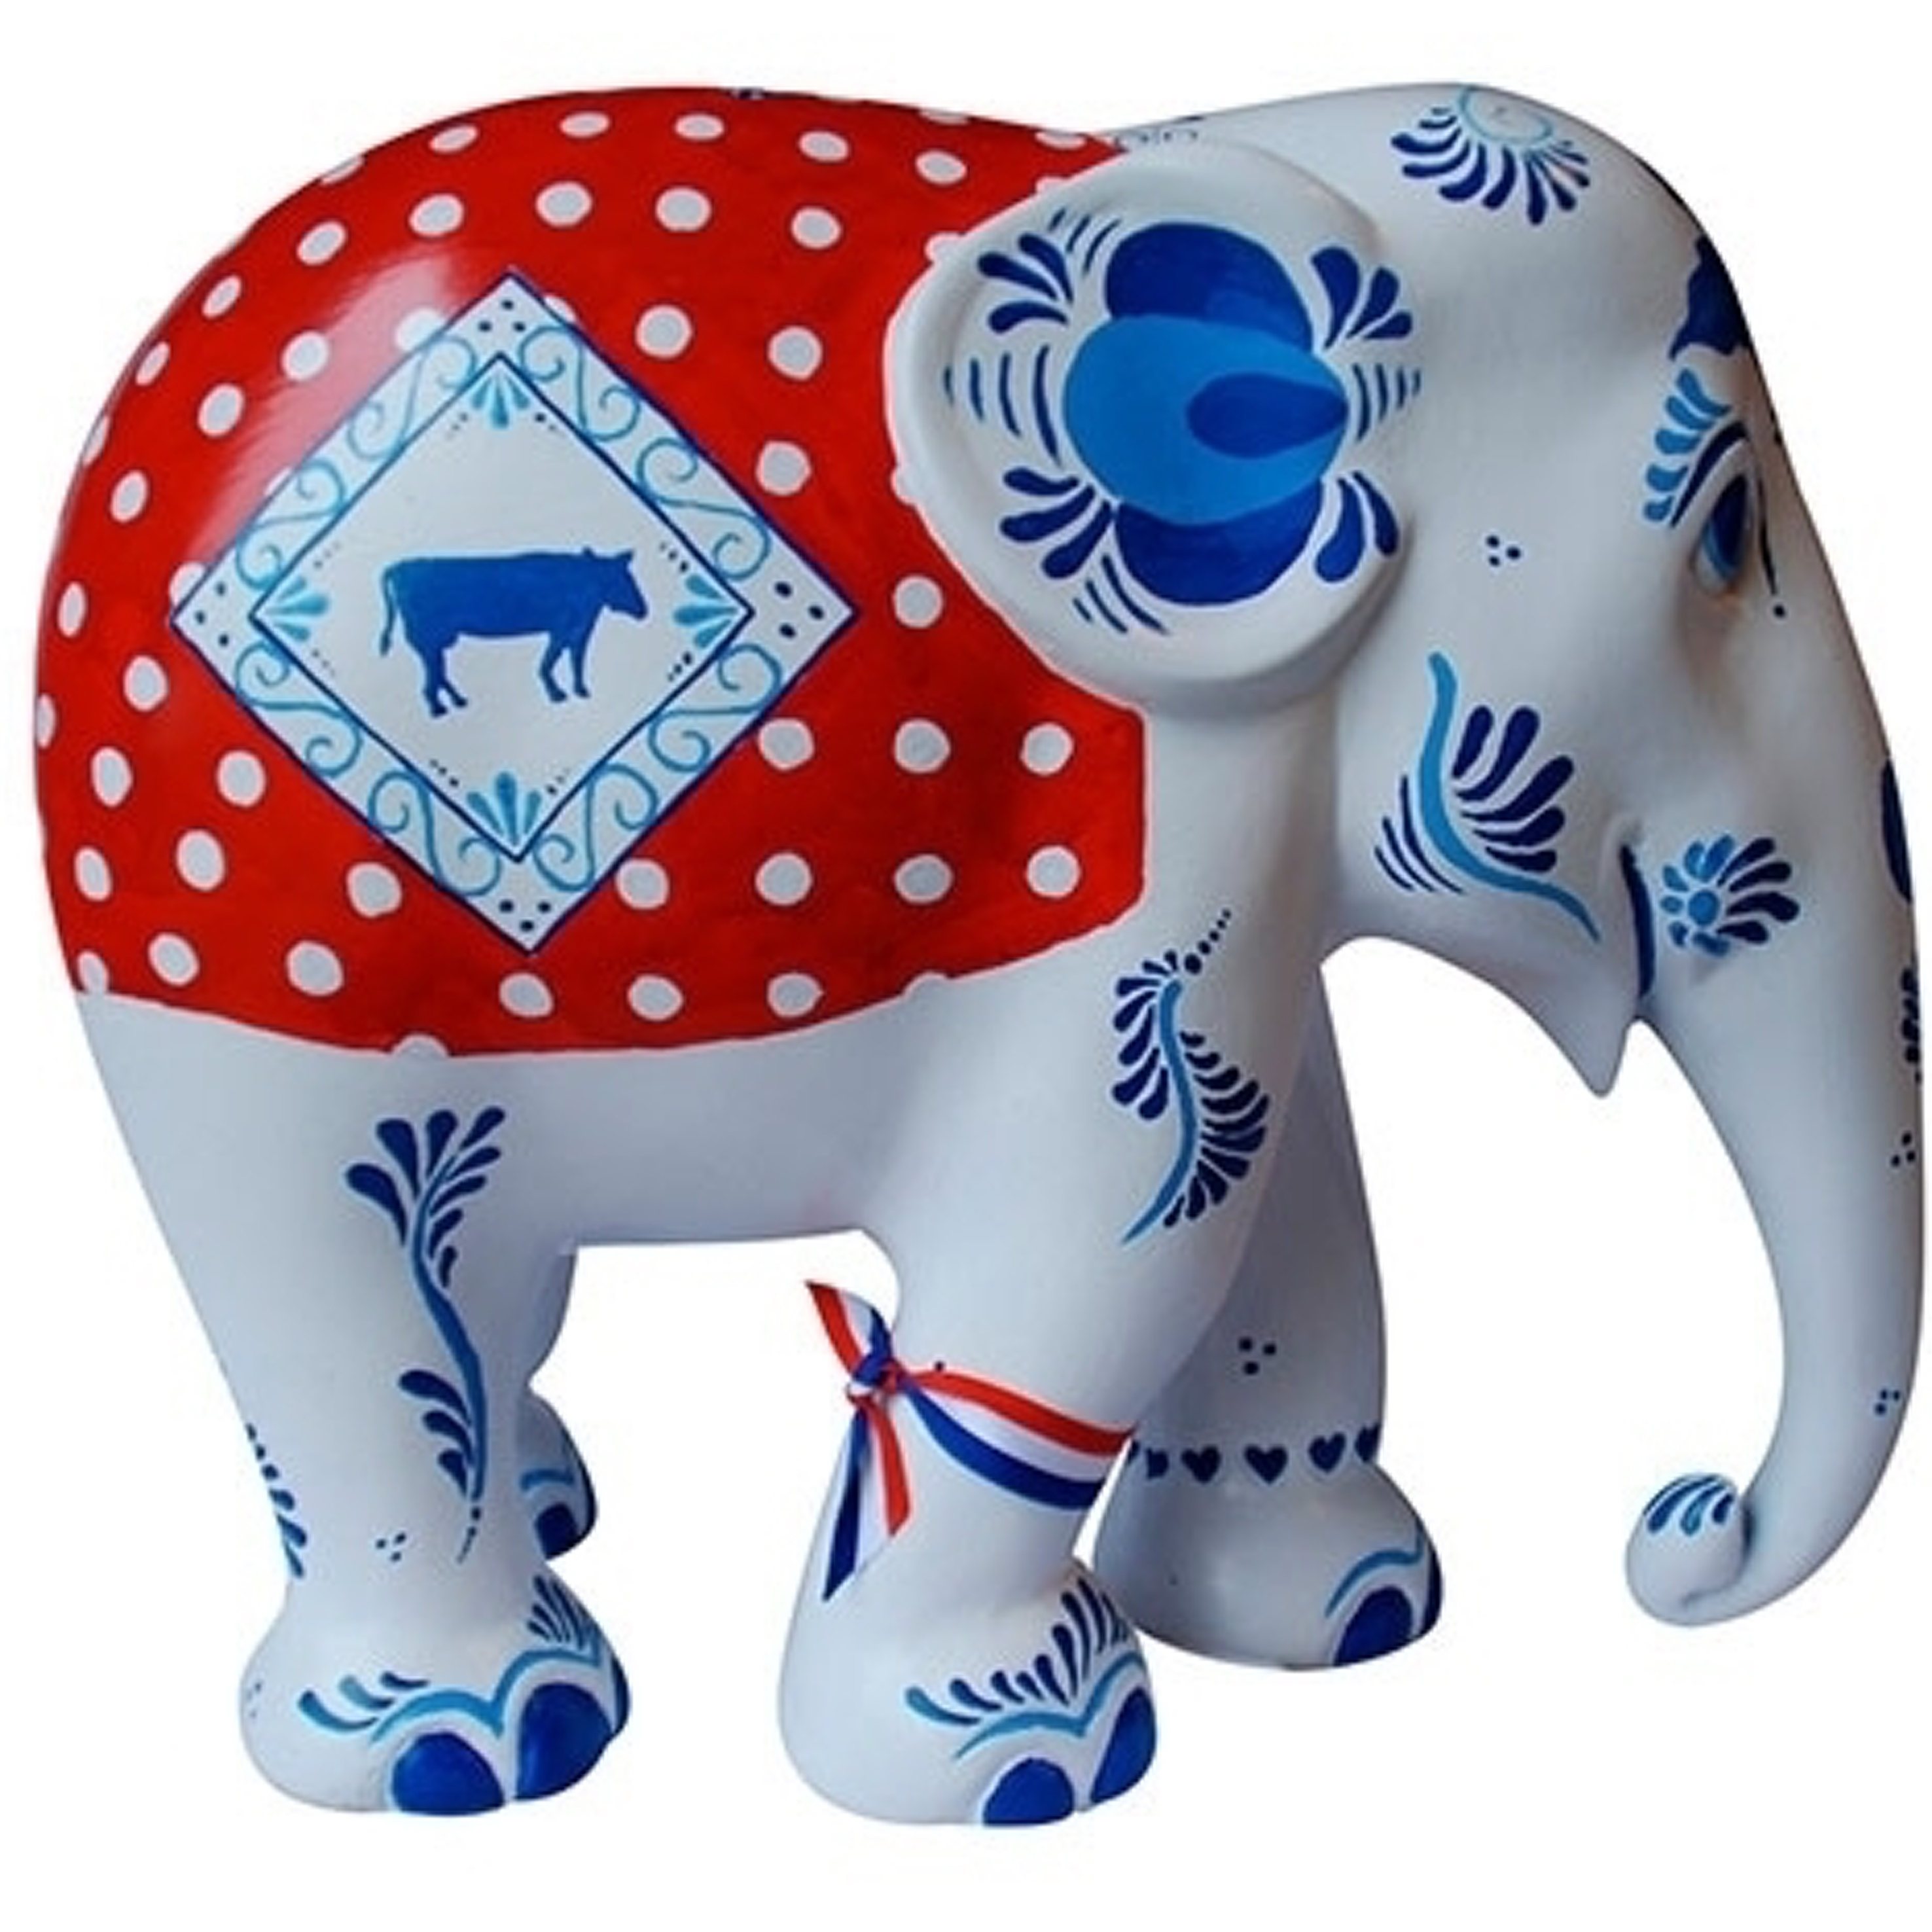 Elephant parade 'Dutchelephant dot com'